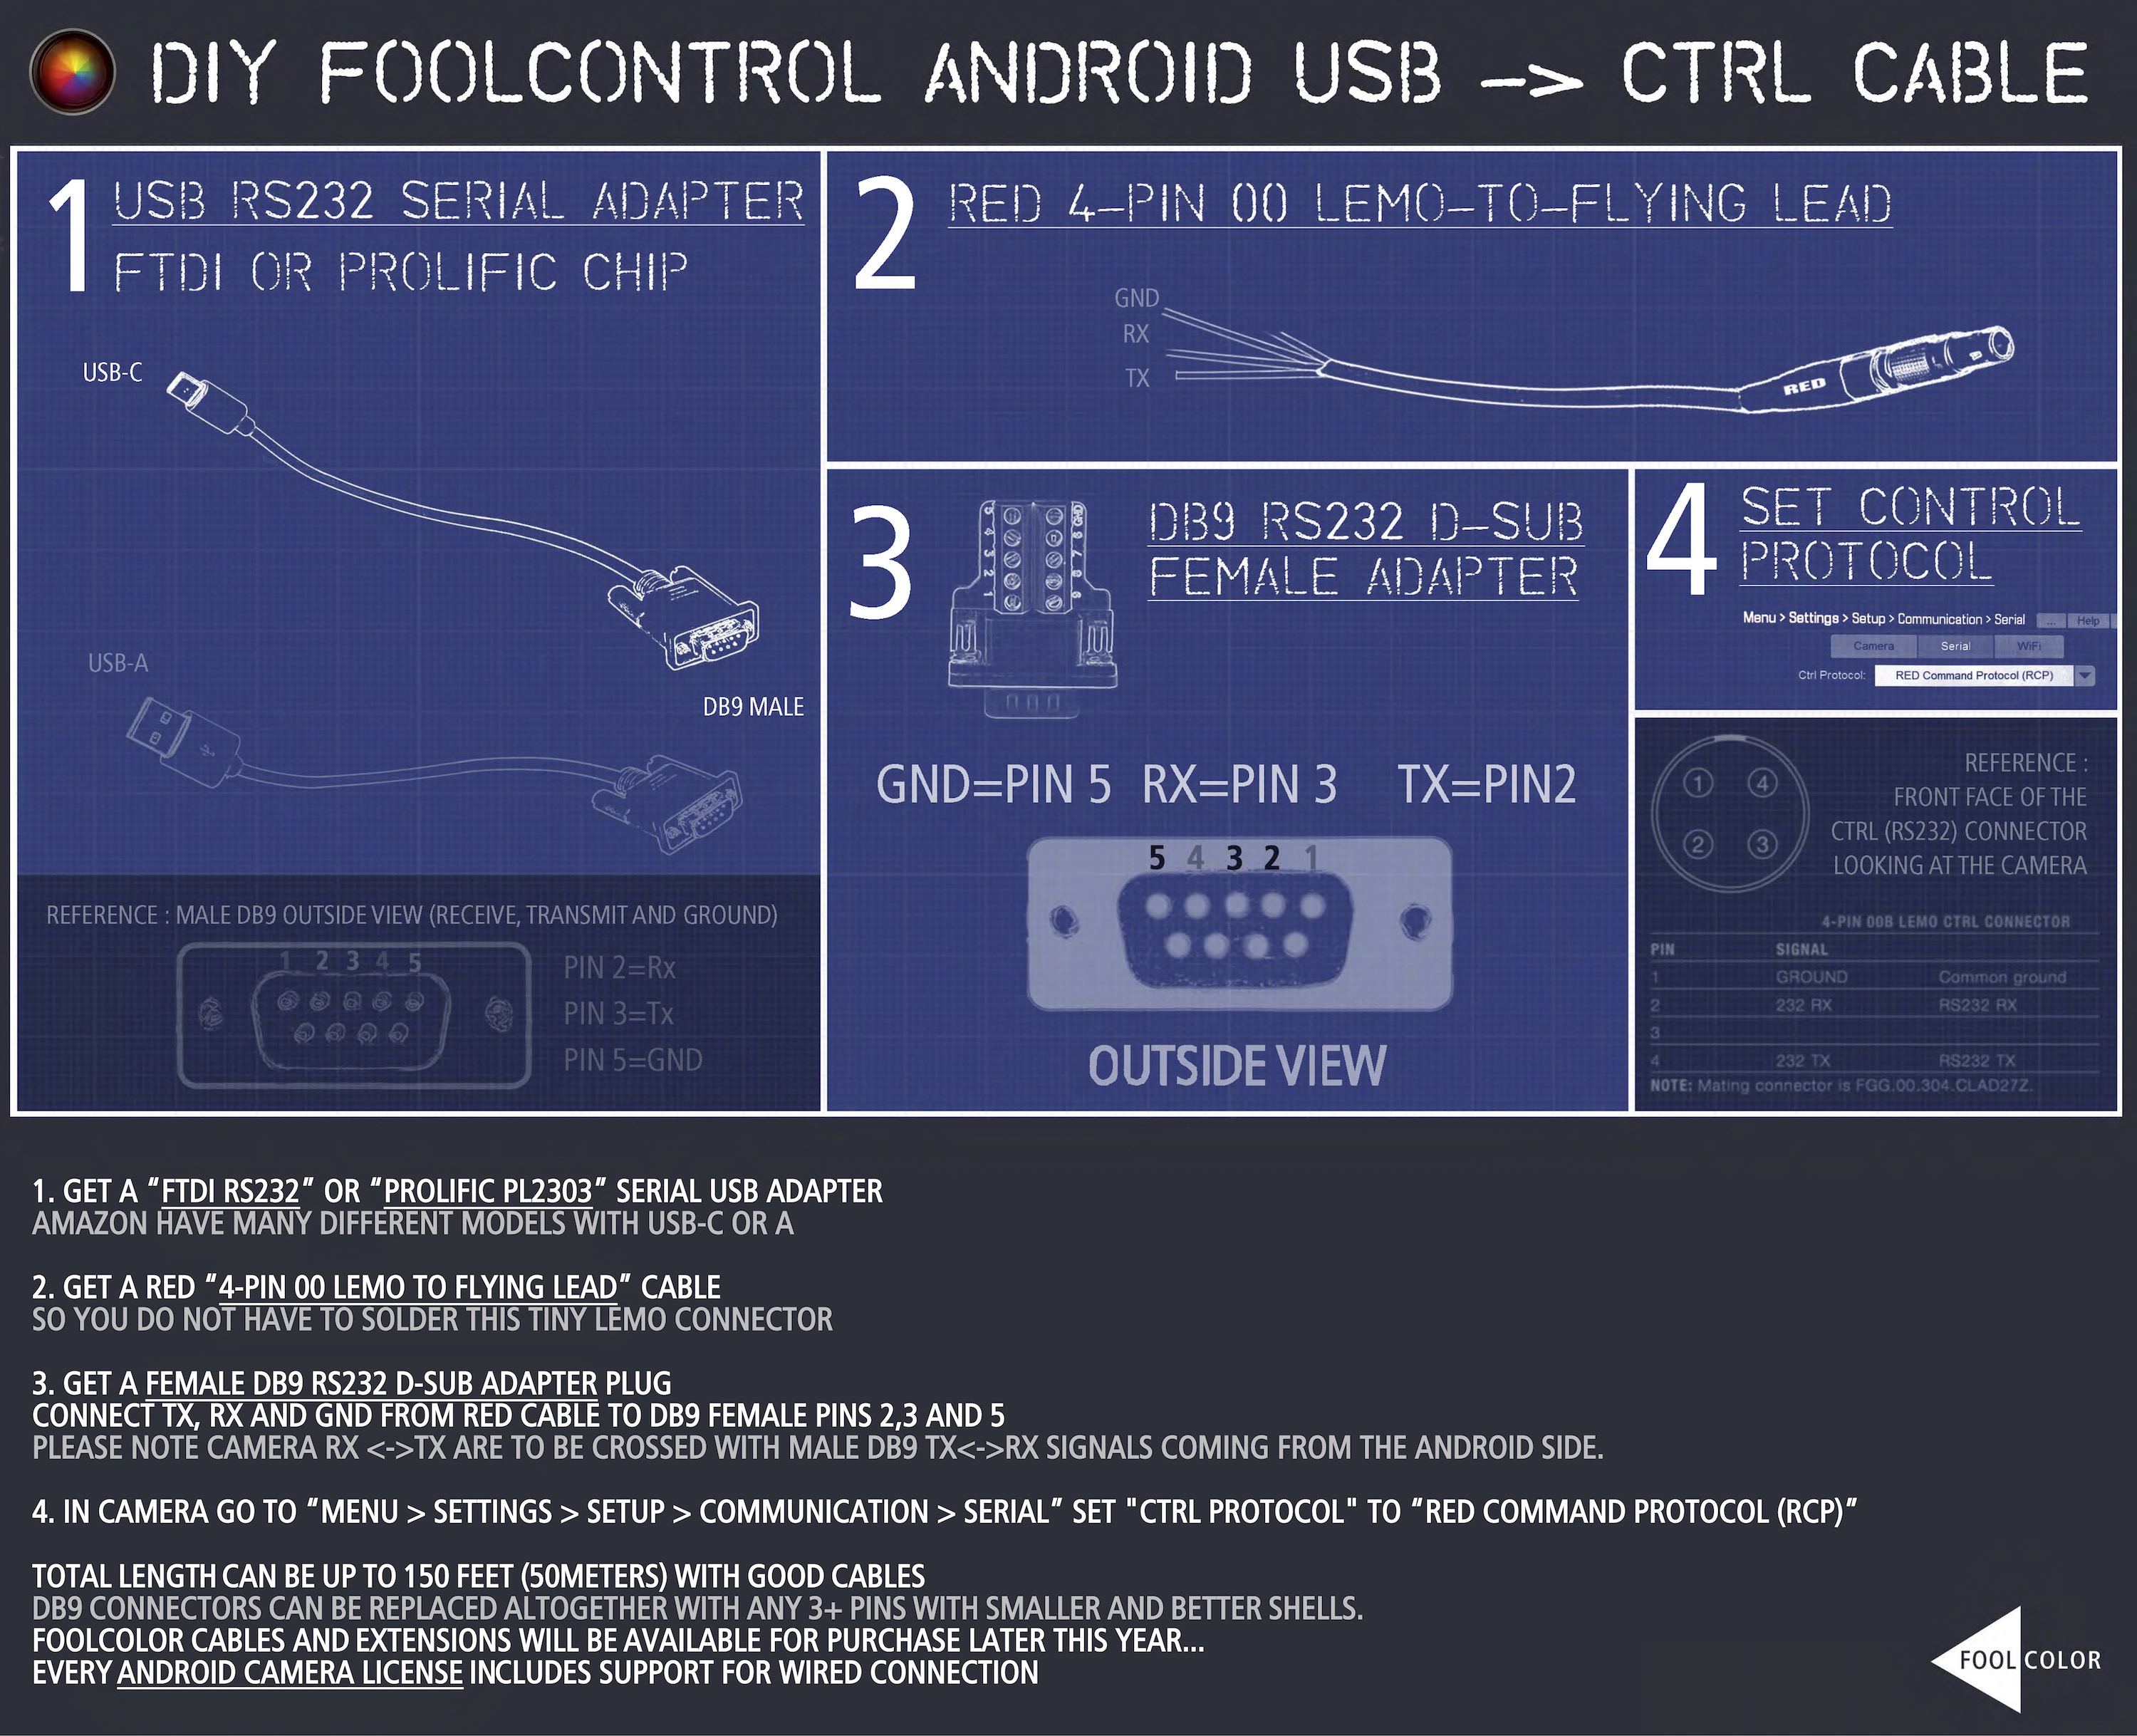 foolcontrol - For Android Released! - Page 2